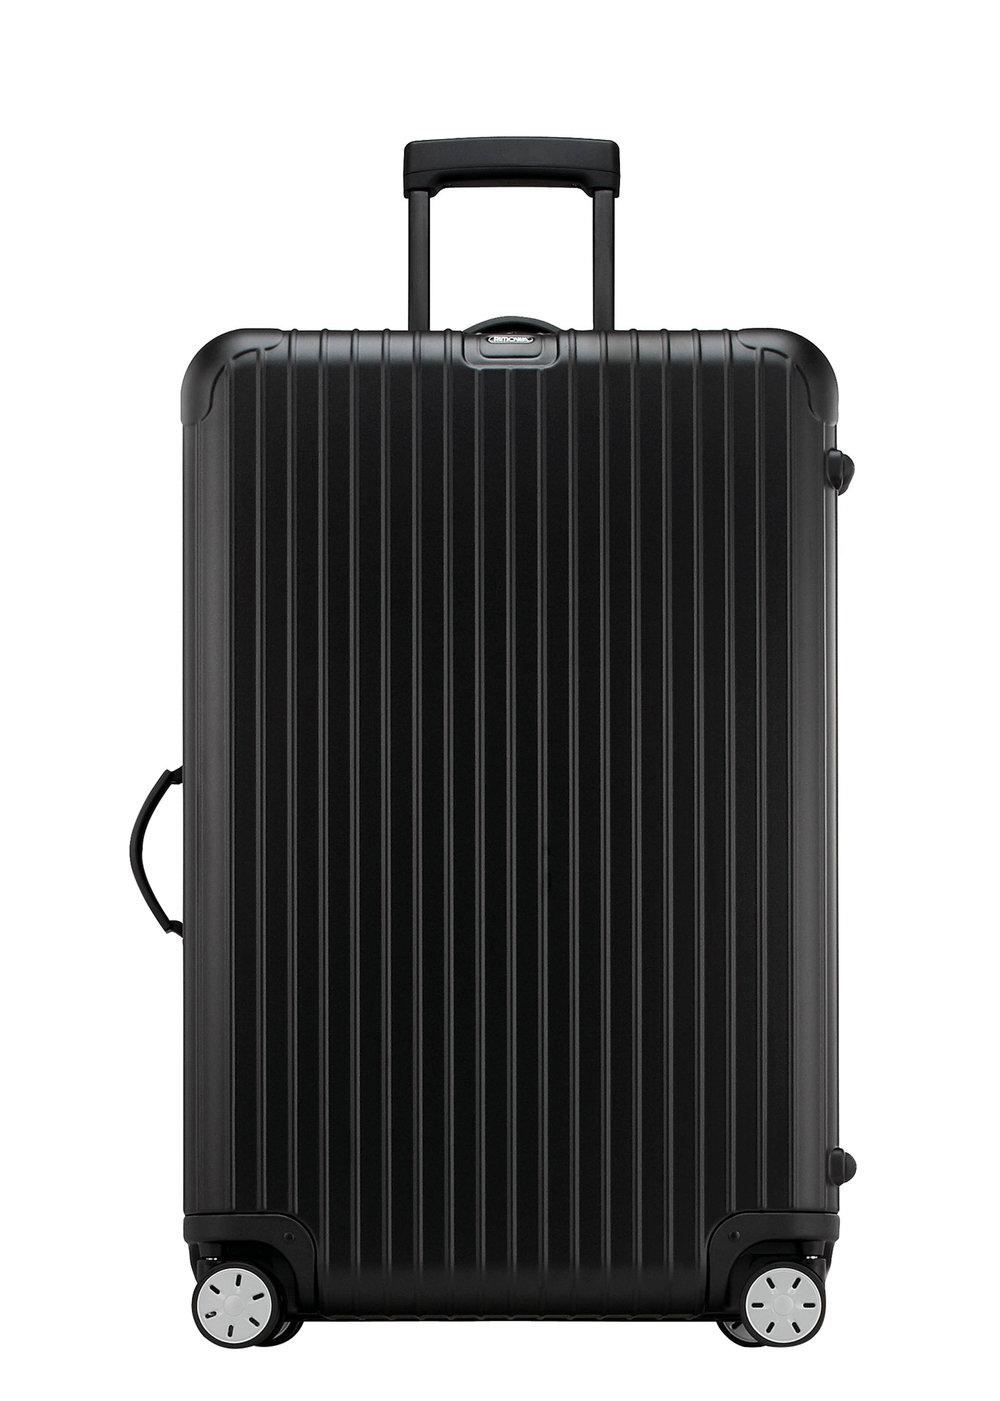 Rimowa Salsa Air Ultralight case